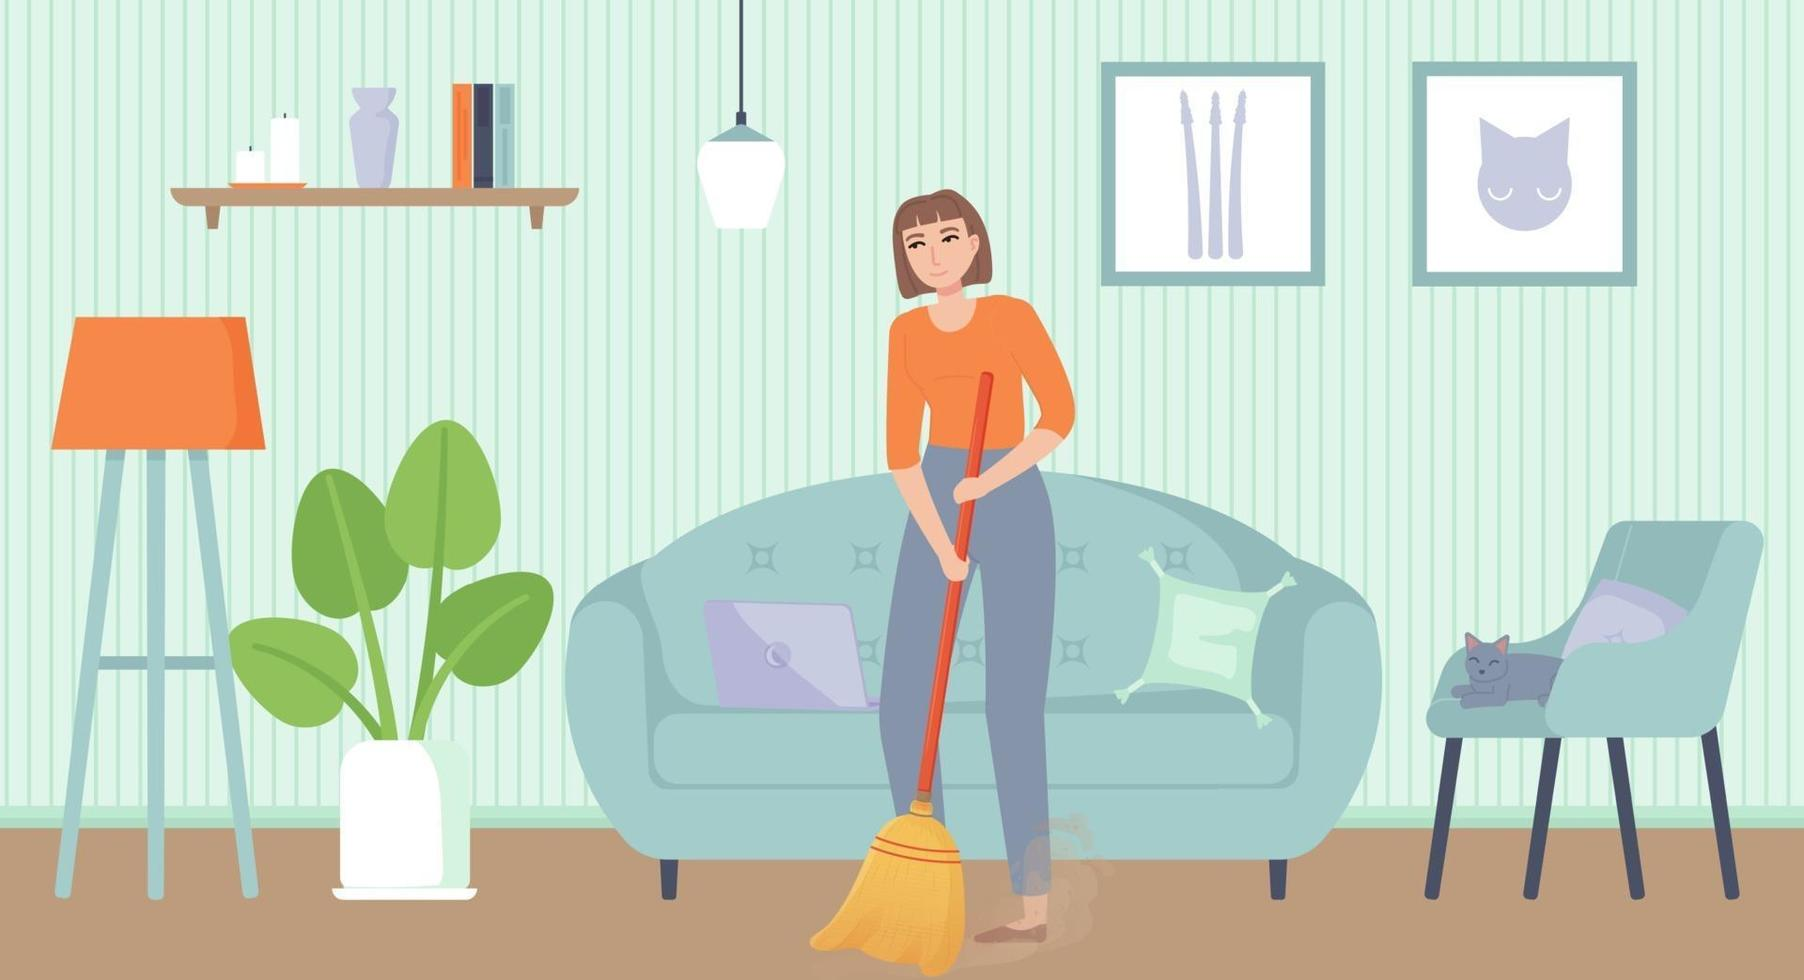 Girl sweeping floor Home chores household duties cleaning concept Stock vector illustration in flat cartoon style